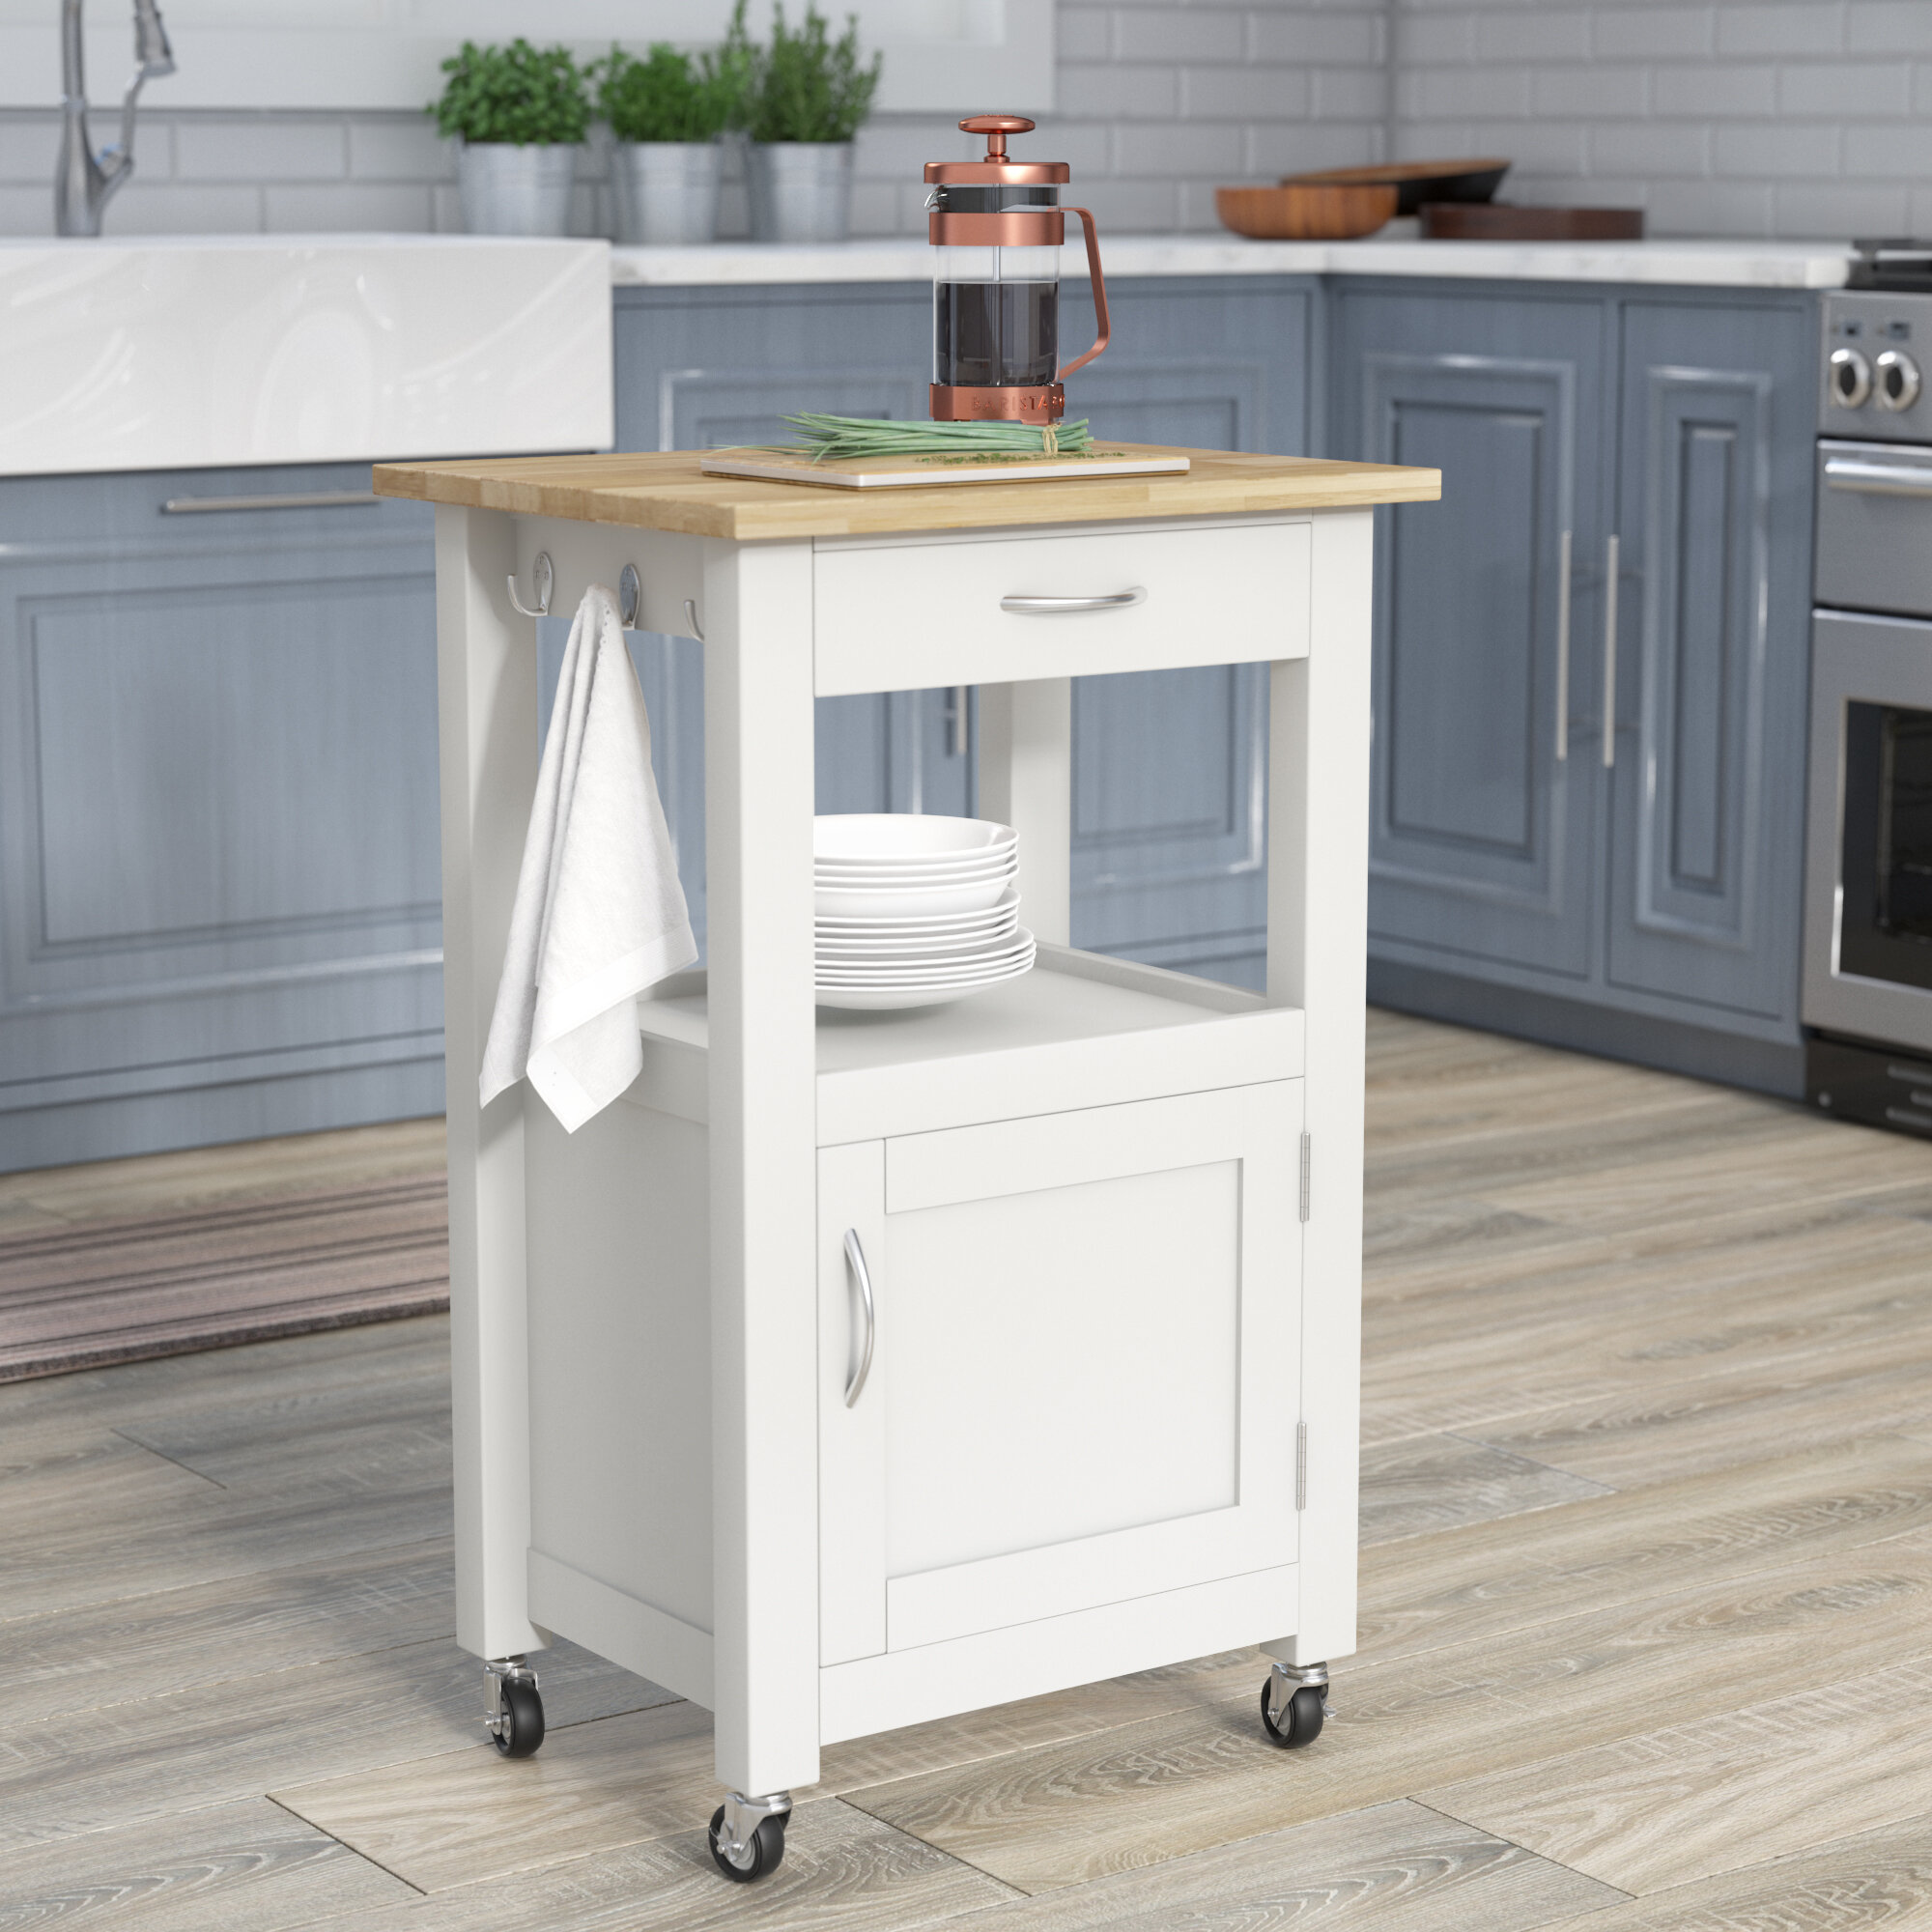 Charlton Home Jordan Kitchen Island Cart With Natural Wood Top U0026 Reviews |  Wayfair